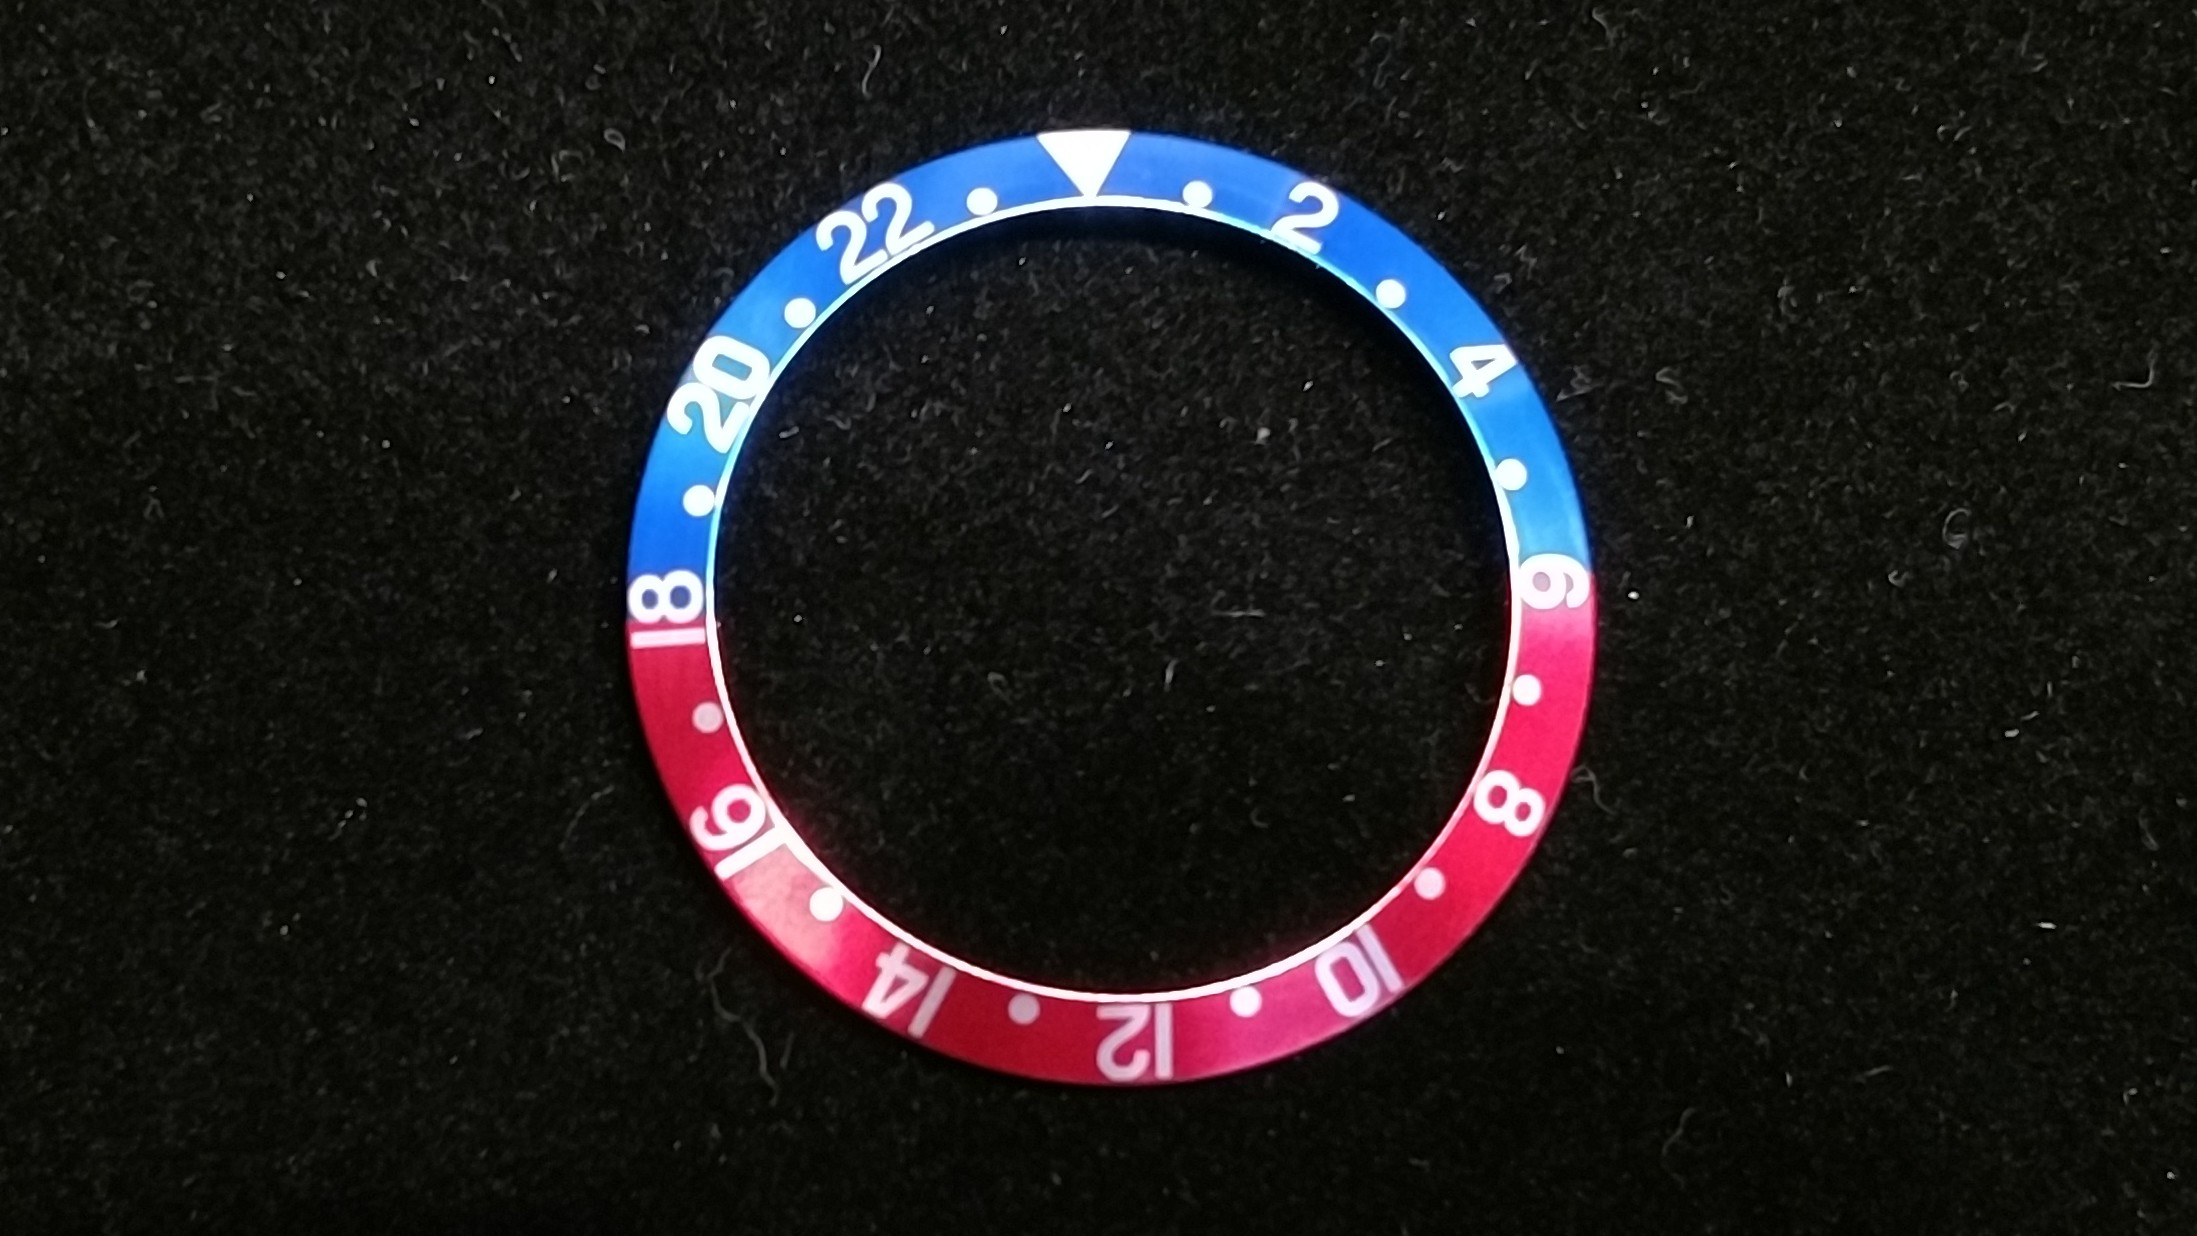 red-blue-gmt2